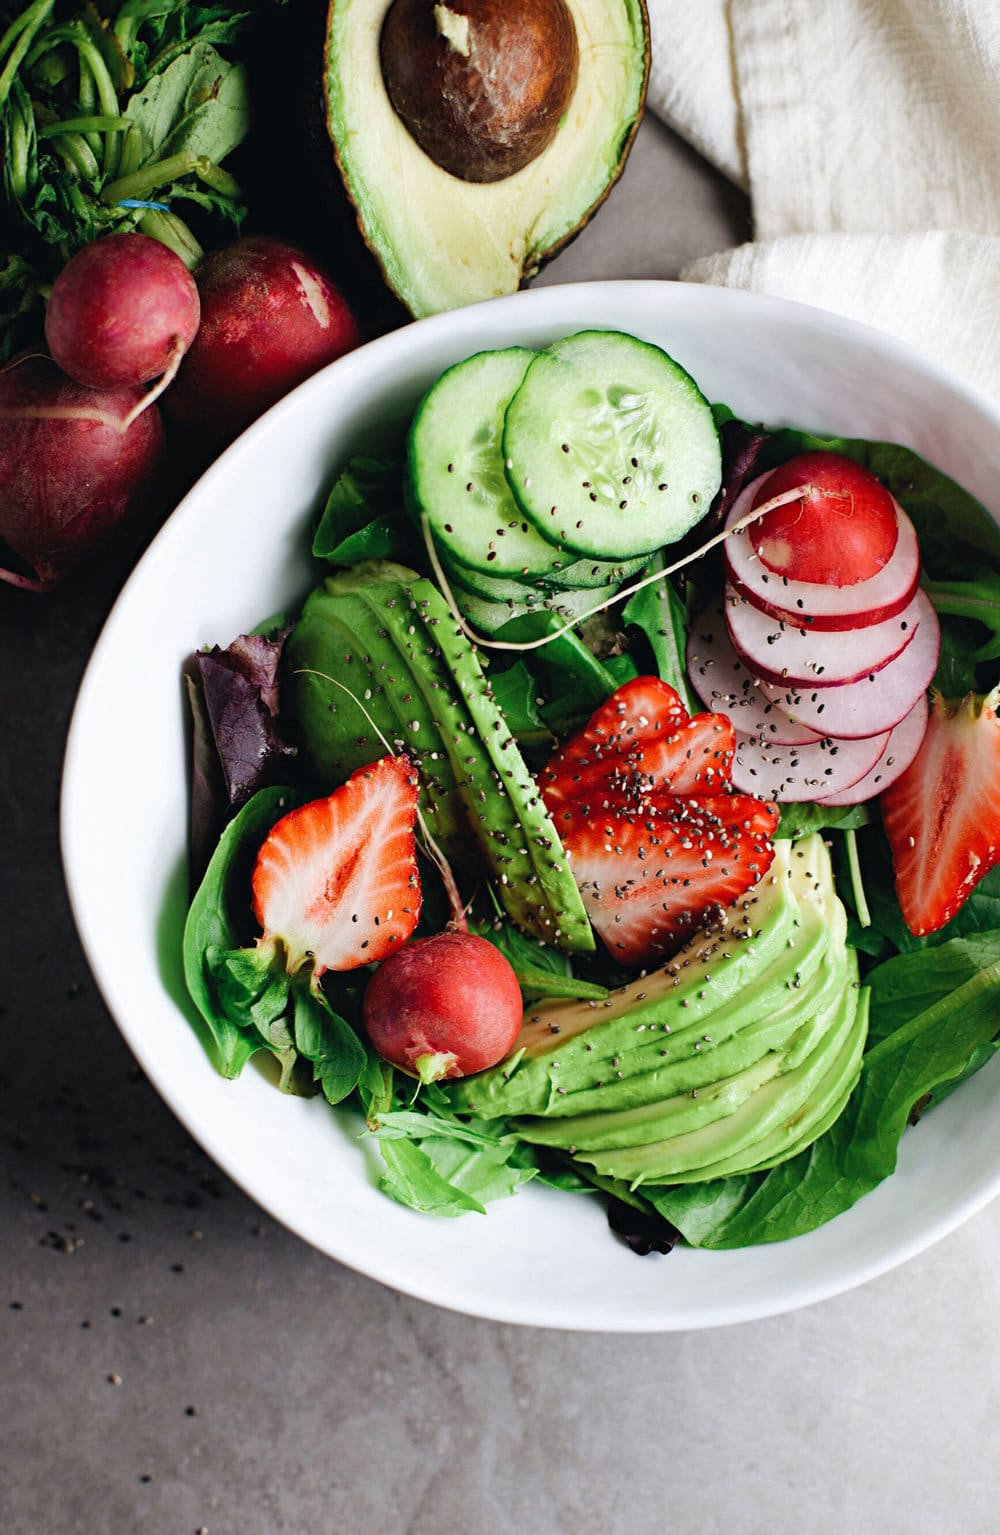 Healthy, wholesome,Loaded Detox Chia Salad. One of my favorite salads! | asimplepalate.com